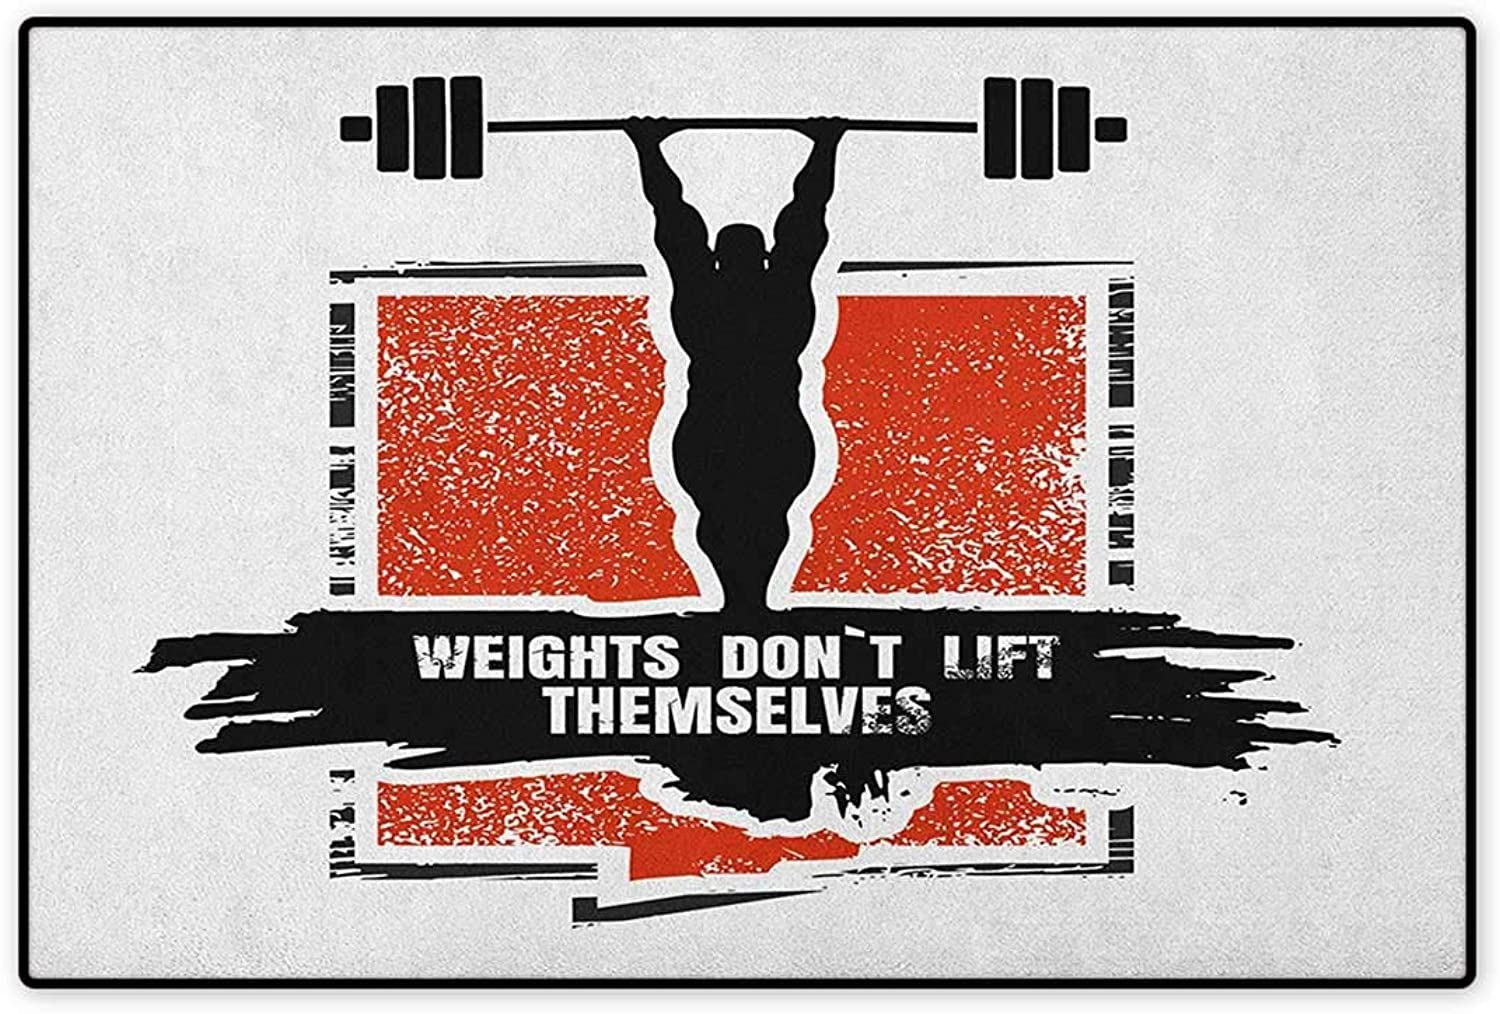 Fitness,Door Mat Increase,Bodybuilder and Huge Barbell Silhouettes Icon of Posing Athlete Weights Lift,Floor Mat Pattern,Red Black White,Size,32 x48  (W80cm x L120cm)